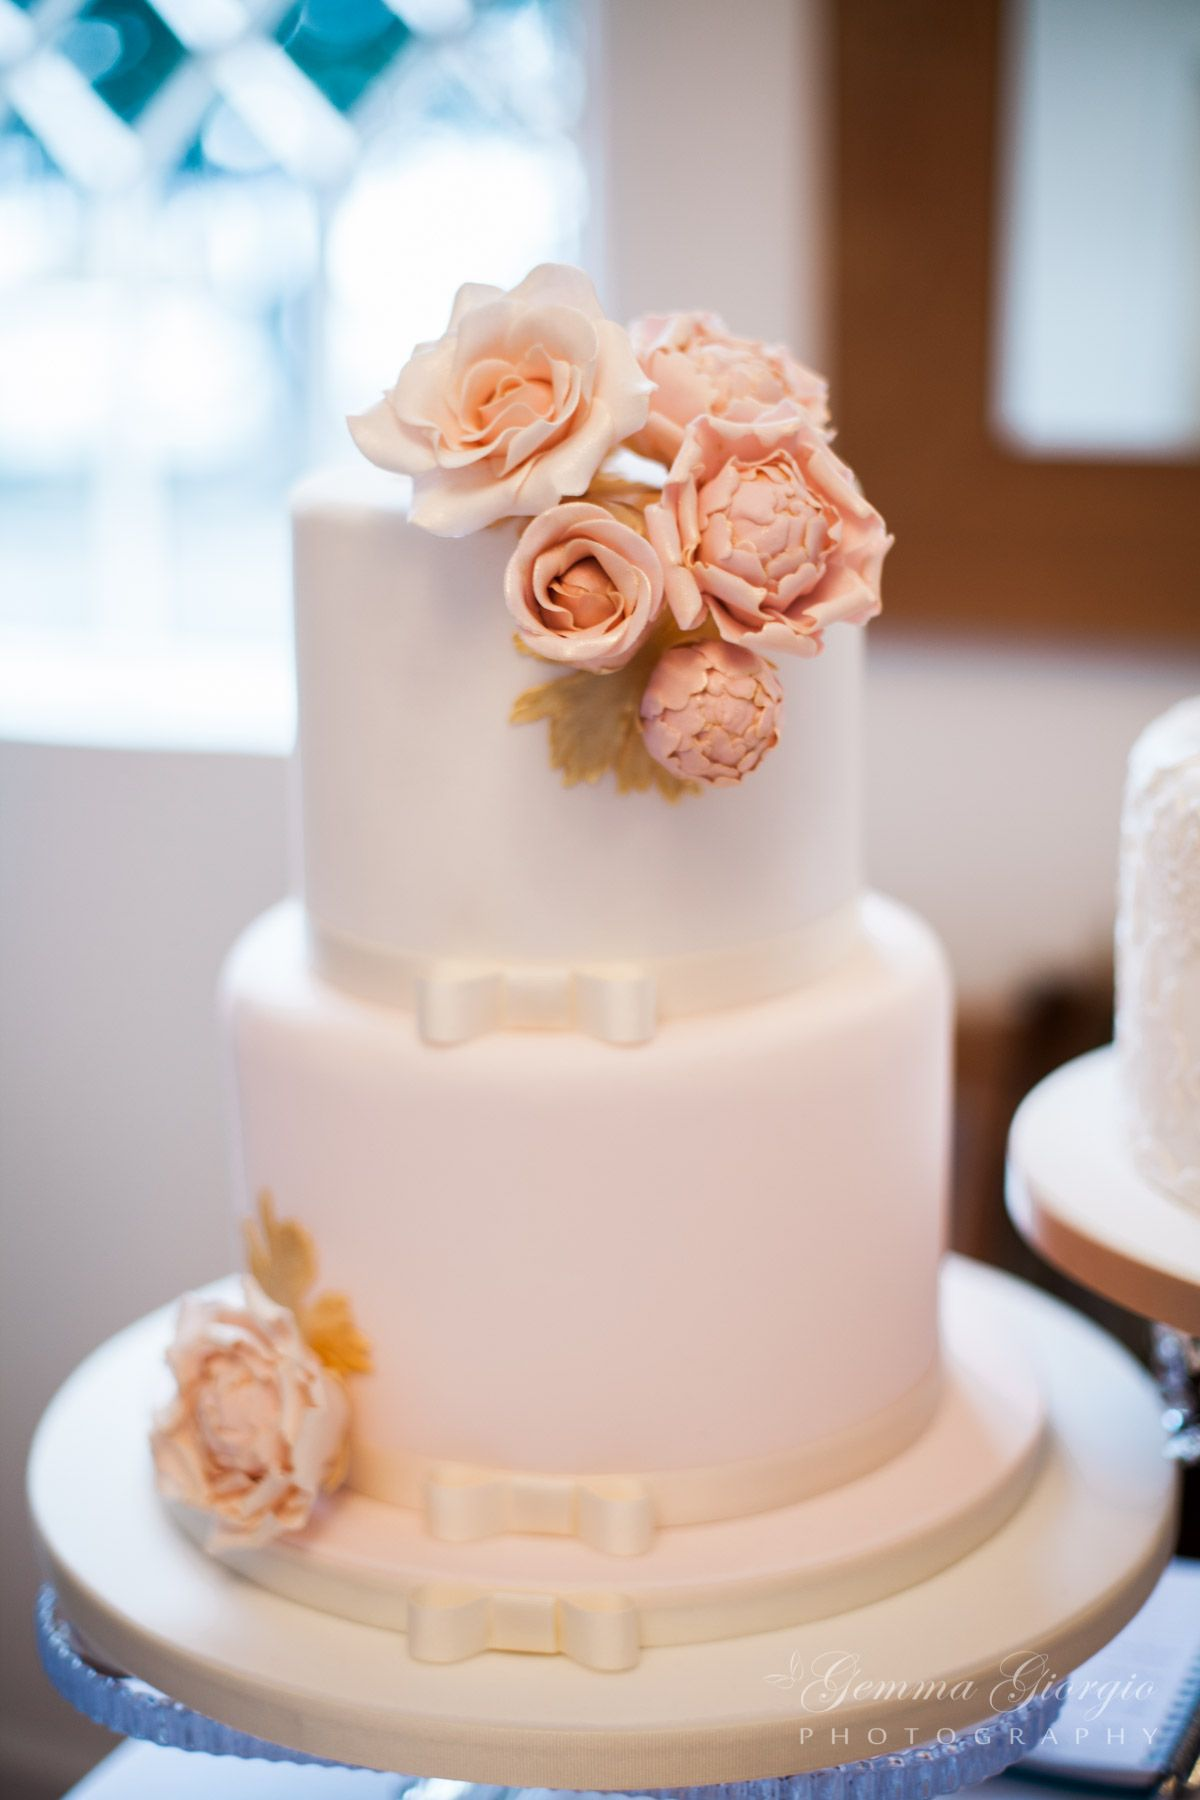 Blush Pink And Ivory 2 Tier Wedding Cake With Sugar